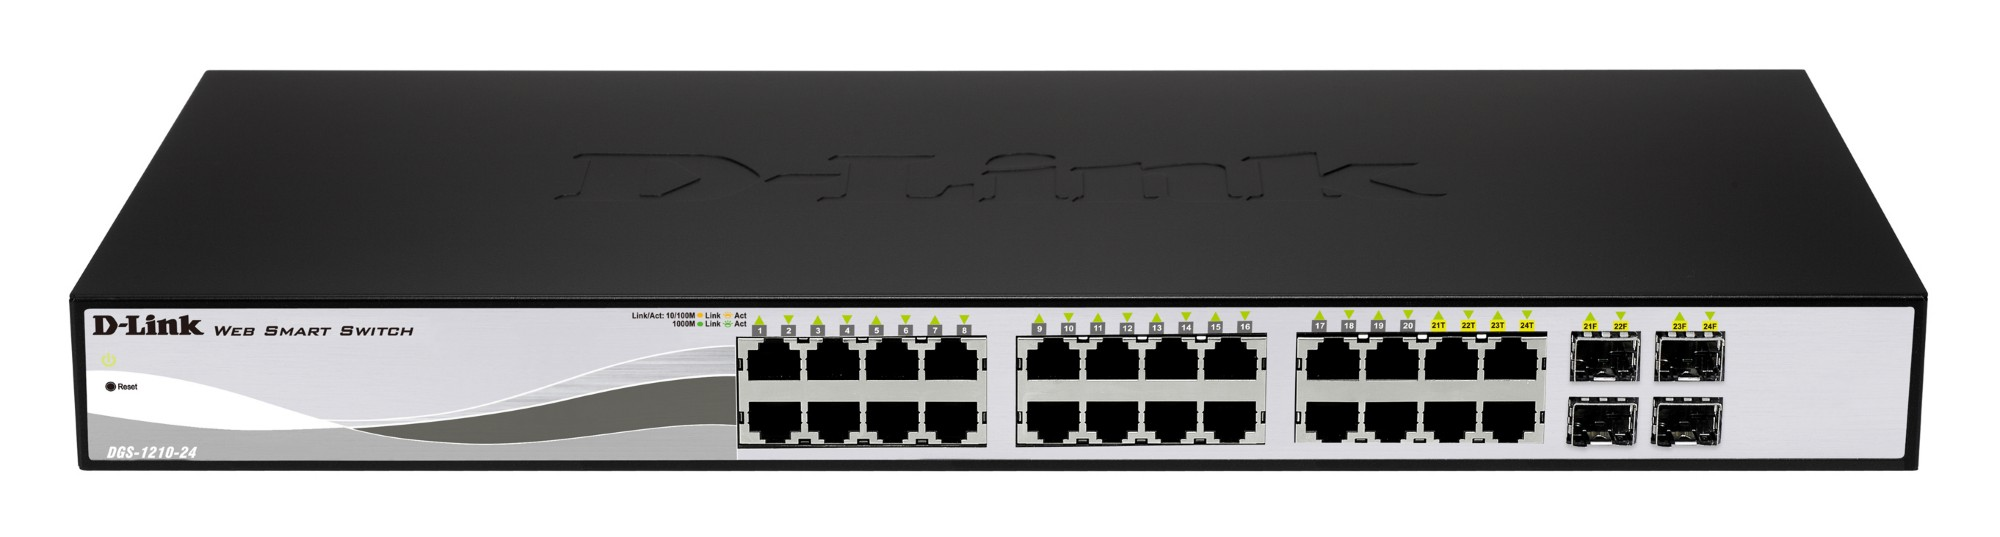 D-LINK DGS-1210-24P L2 GIGABIT ETHERNET BLACK NETWORK SWITCH